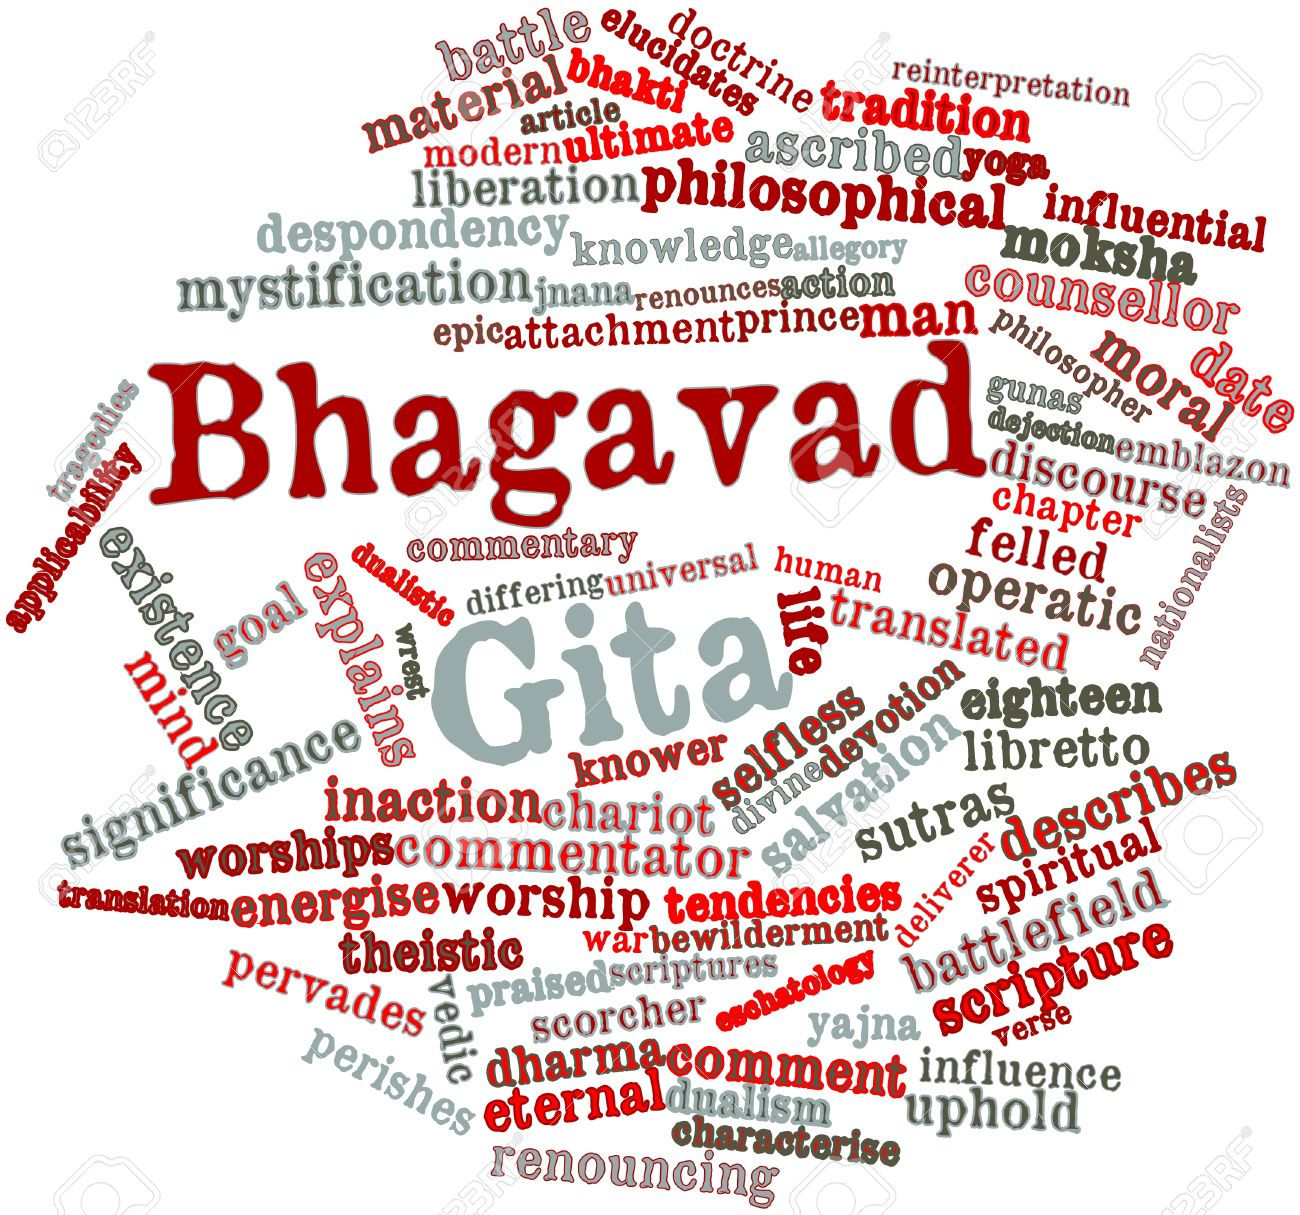 life-lessons-from-bhagawad-gita